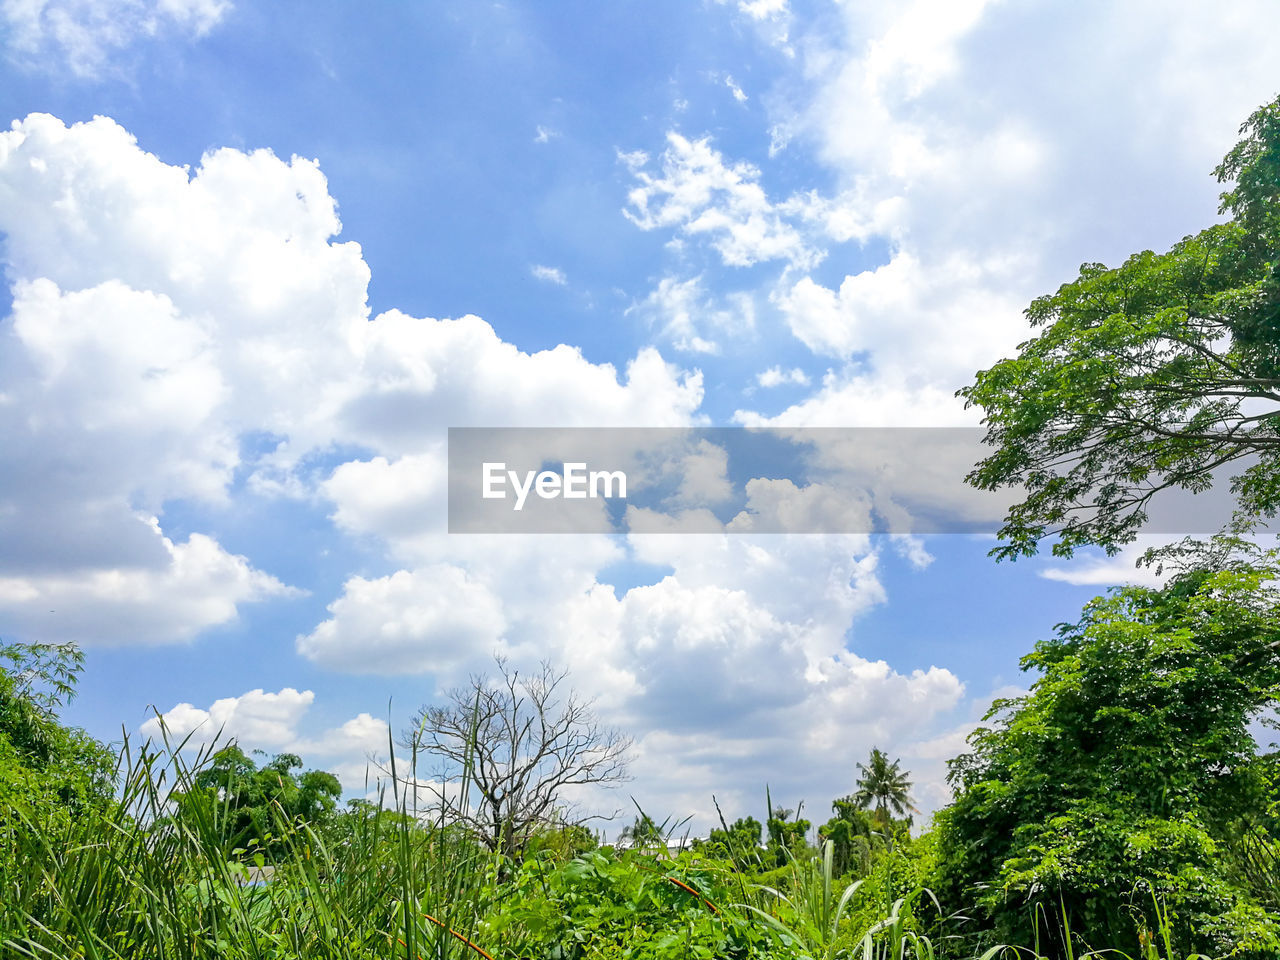 cloud - sky, sky, plant, beauty in nature, tree, growth, tranquility, nature, scenics - nature, day, green color, tranquil scene, no people, outdoors, low angle view, non-urban scene, land, idyllic, environment, grass